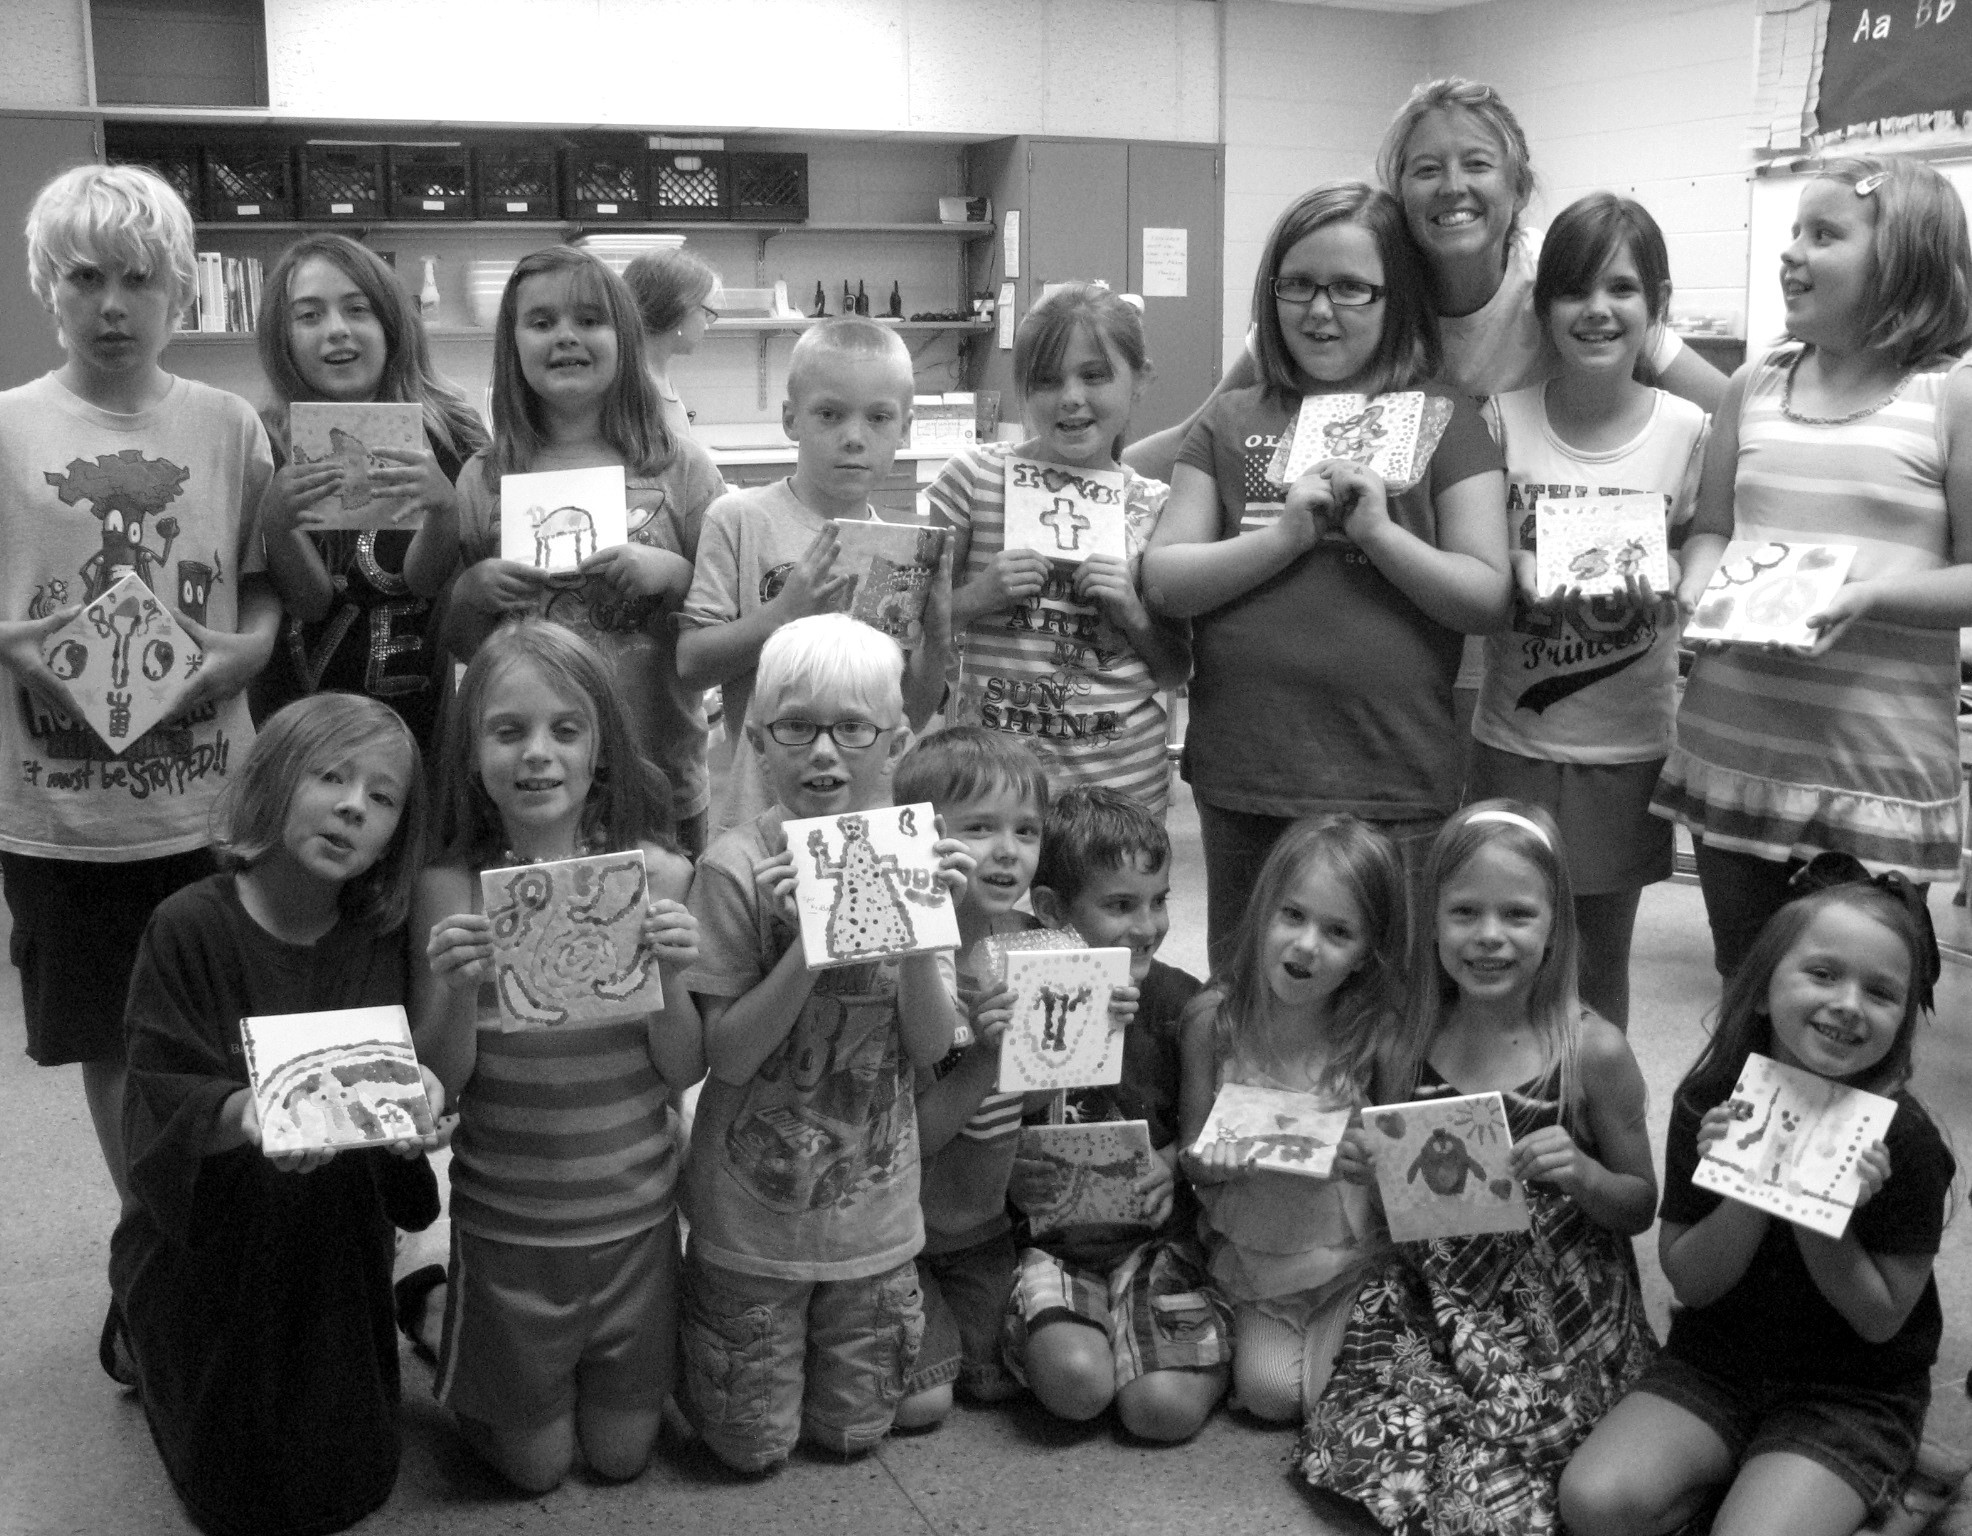 """Hayden students showing off their artwork created during the summer art program at Hayden Primary School are (front row from left) Kady Wood, Macy Lucas, Tyler Friday, Ryan Nix, Lex Sorensen, Emma Powell, Alexis Johnson, and Ella Armstrong. Back row (from left) Ben McGuire Davis, Sadie Odom, Hannah Sorrell, Logan Cox, Chloe Dover, Emma Nix, teacher Billie Miller, Leanne Brown, and Rayne Guerra. Art teacher/guidance counselor Billie Miller will teach after-school art classes at the school again starting in September. Miller chooses a curriculum based on student ability and adds, """"Basically, I create as I go, using the motto, I try, I will, I can."""" Children of all ages are welcome. For more information, contact her at bmiller@blountboe.net. – Tanna Friday"""